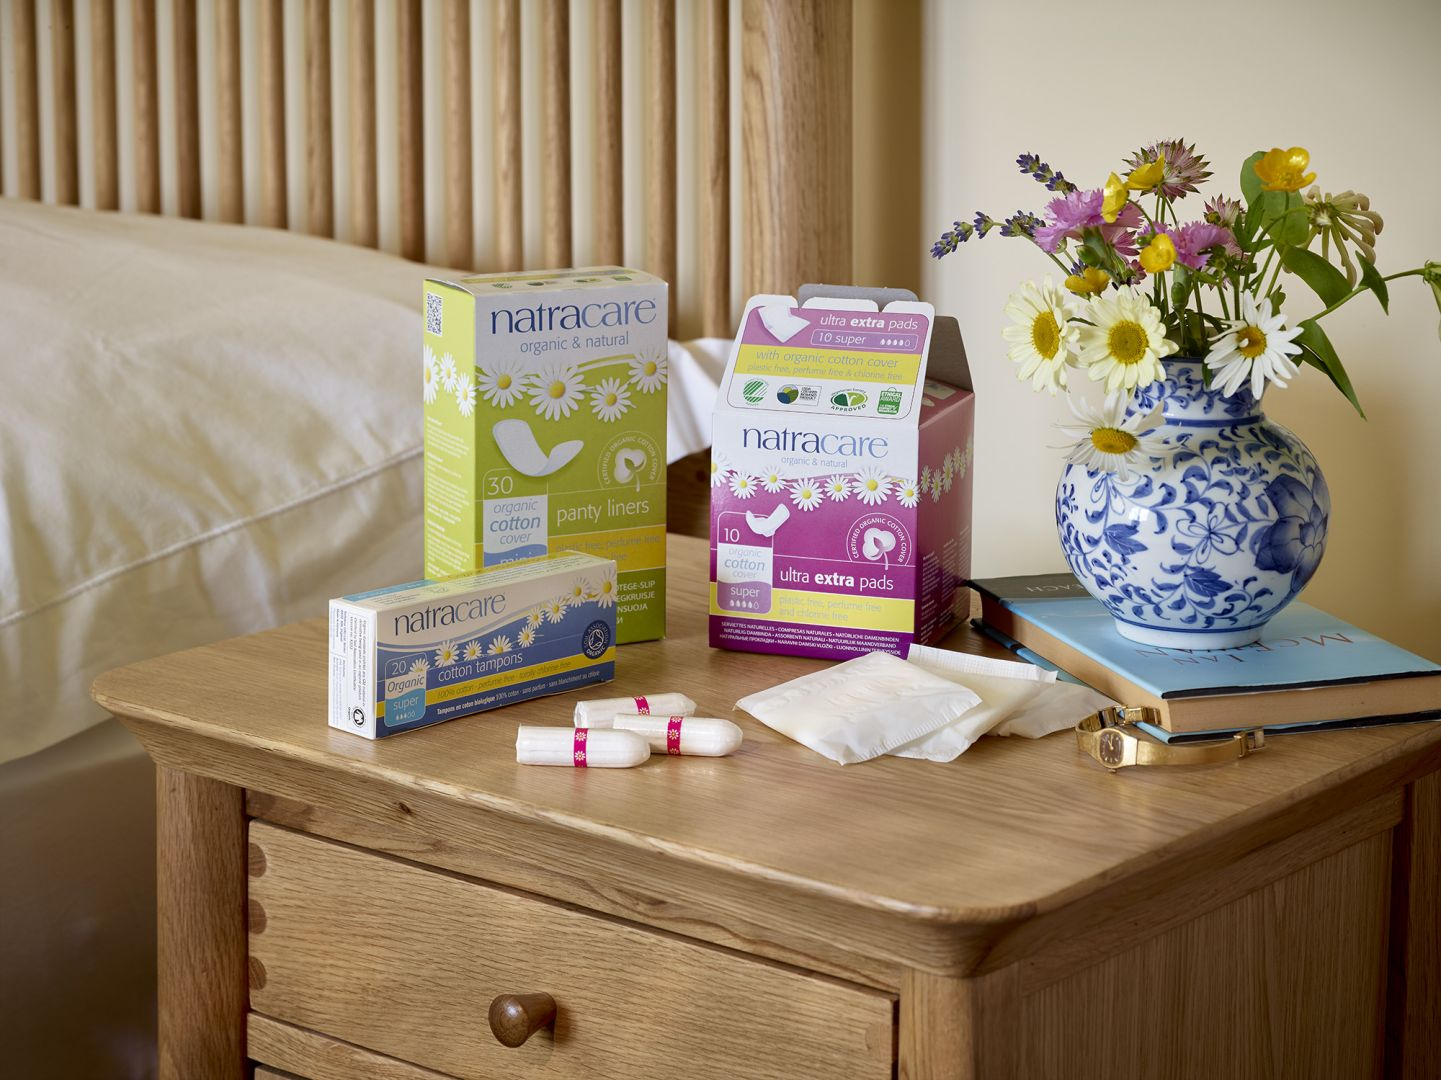 eco-friendly period options: natracare products on bedside table